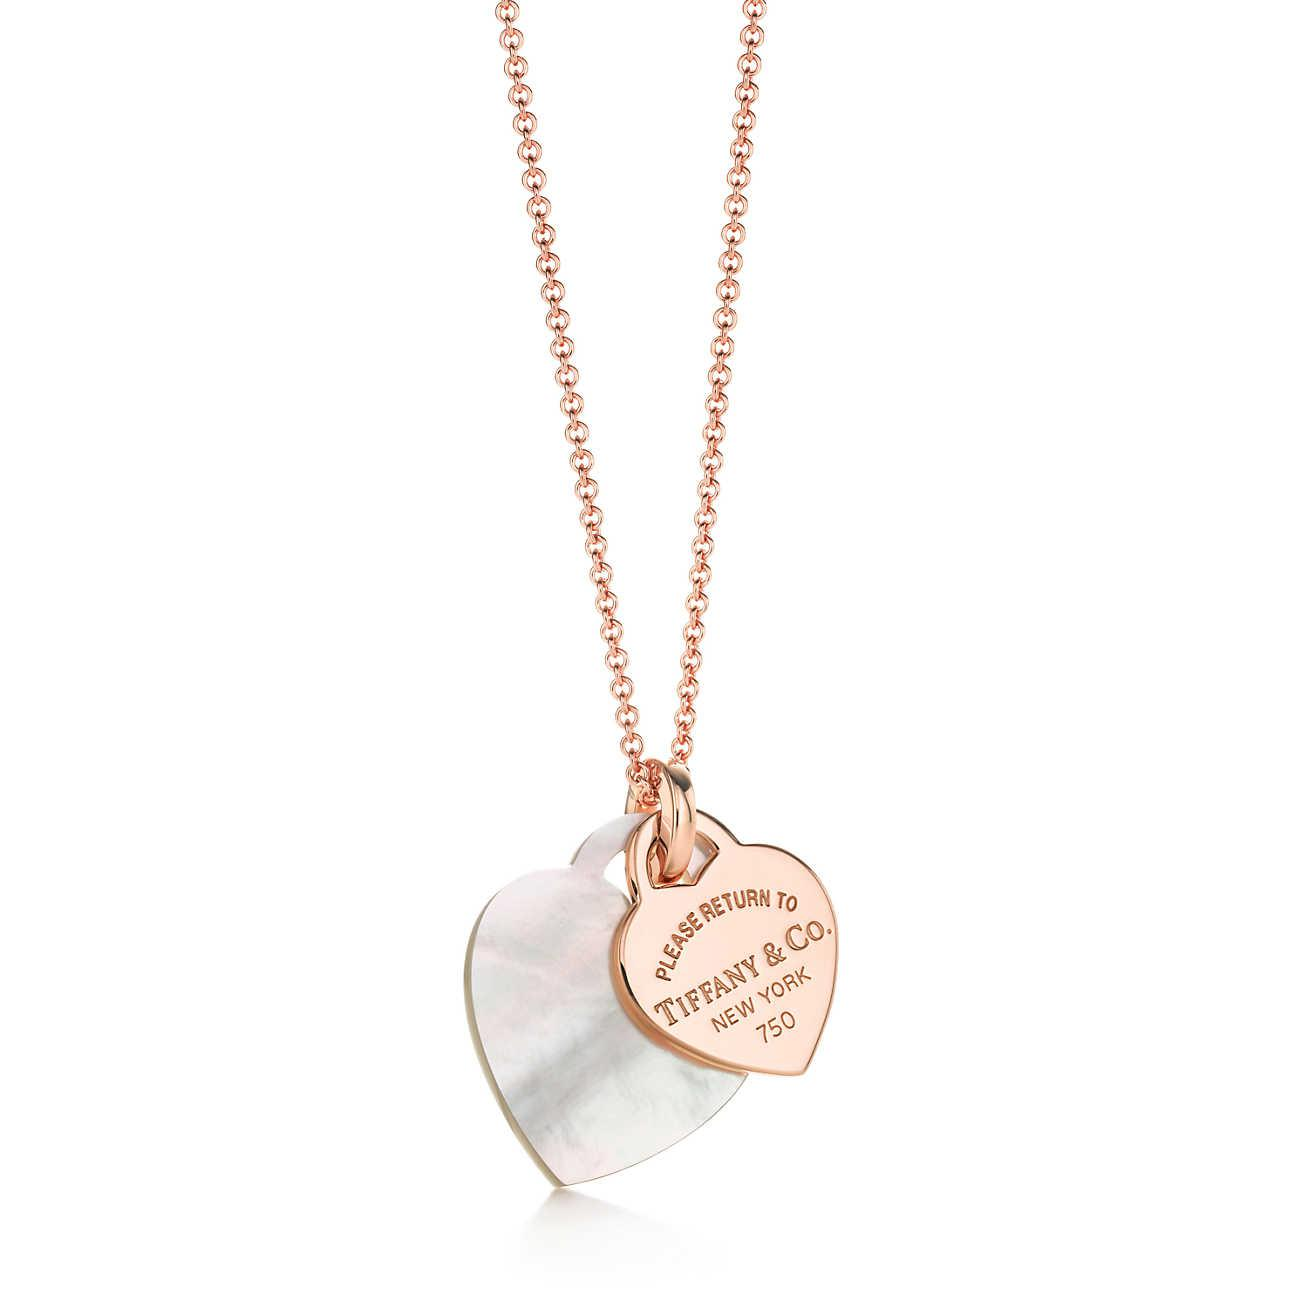 Tiffany co return to tiffanytmdouble heart tag pendant in mother tiffany co aloadofball Gallery